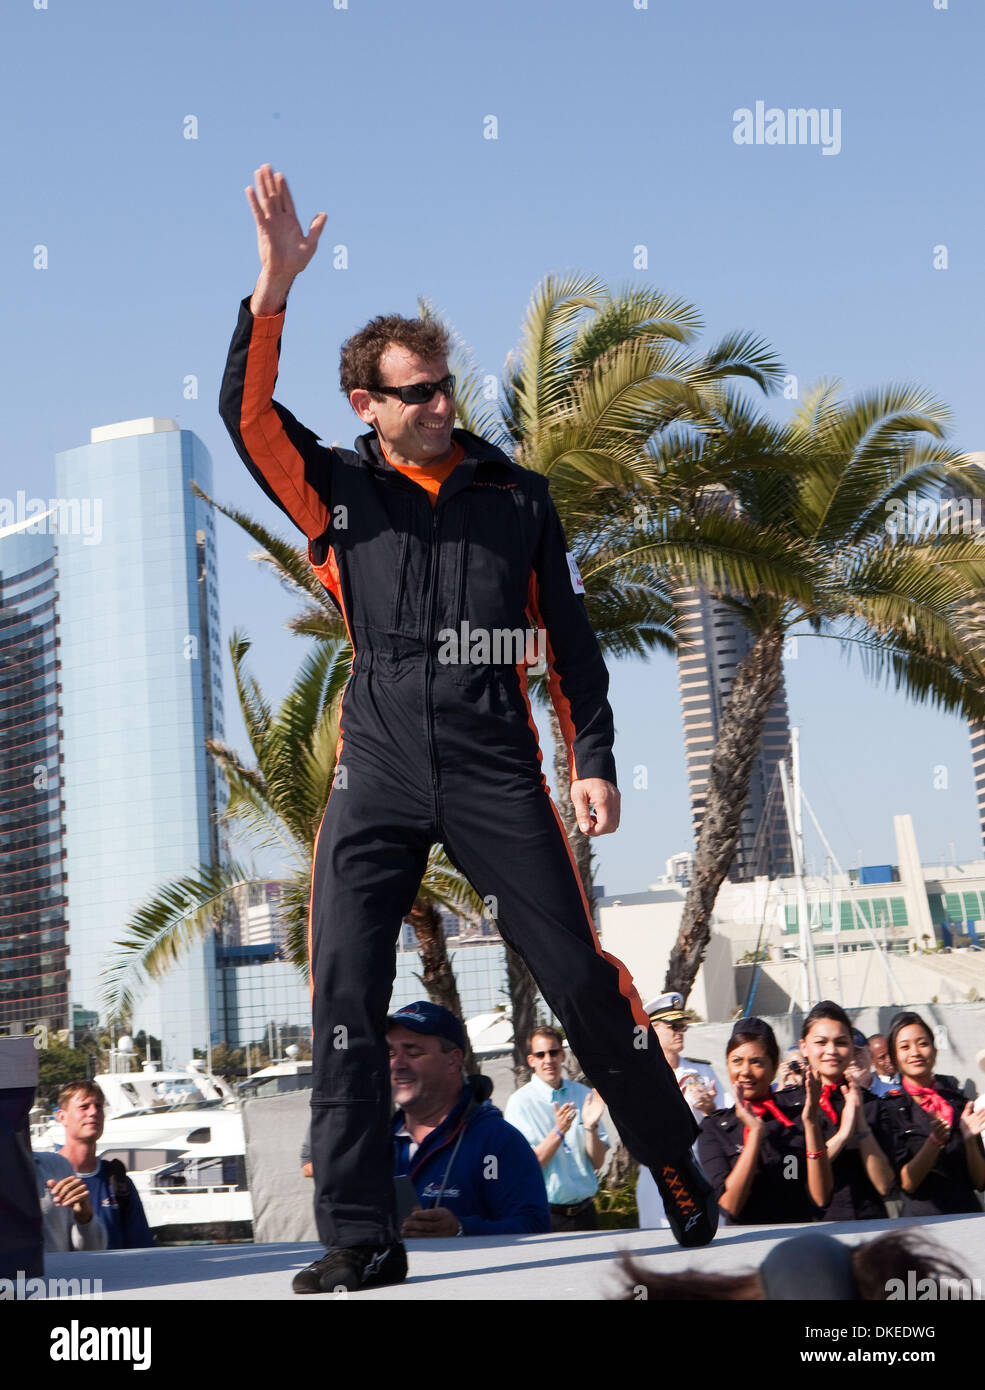 May 10, 2009 - San Diego, California, USA - NICOLAS IVANOFF from France winner of the 2009 Red Bull Air Race in Stock Photo